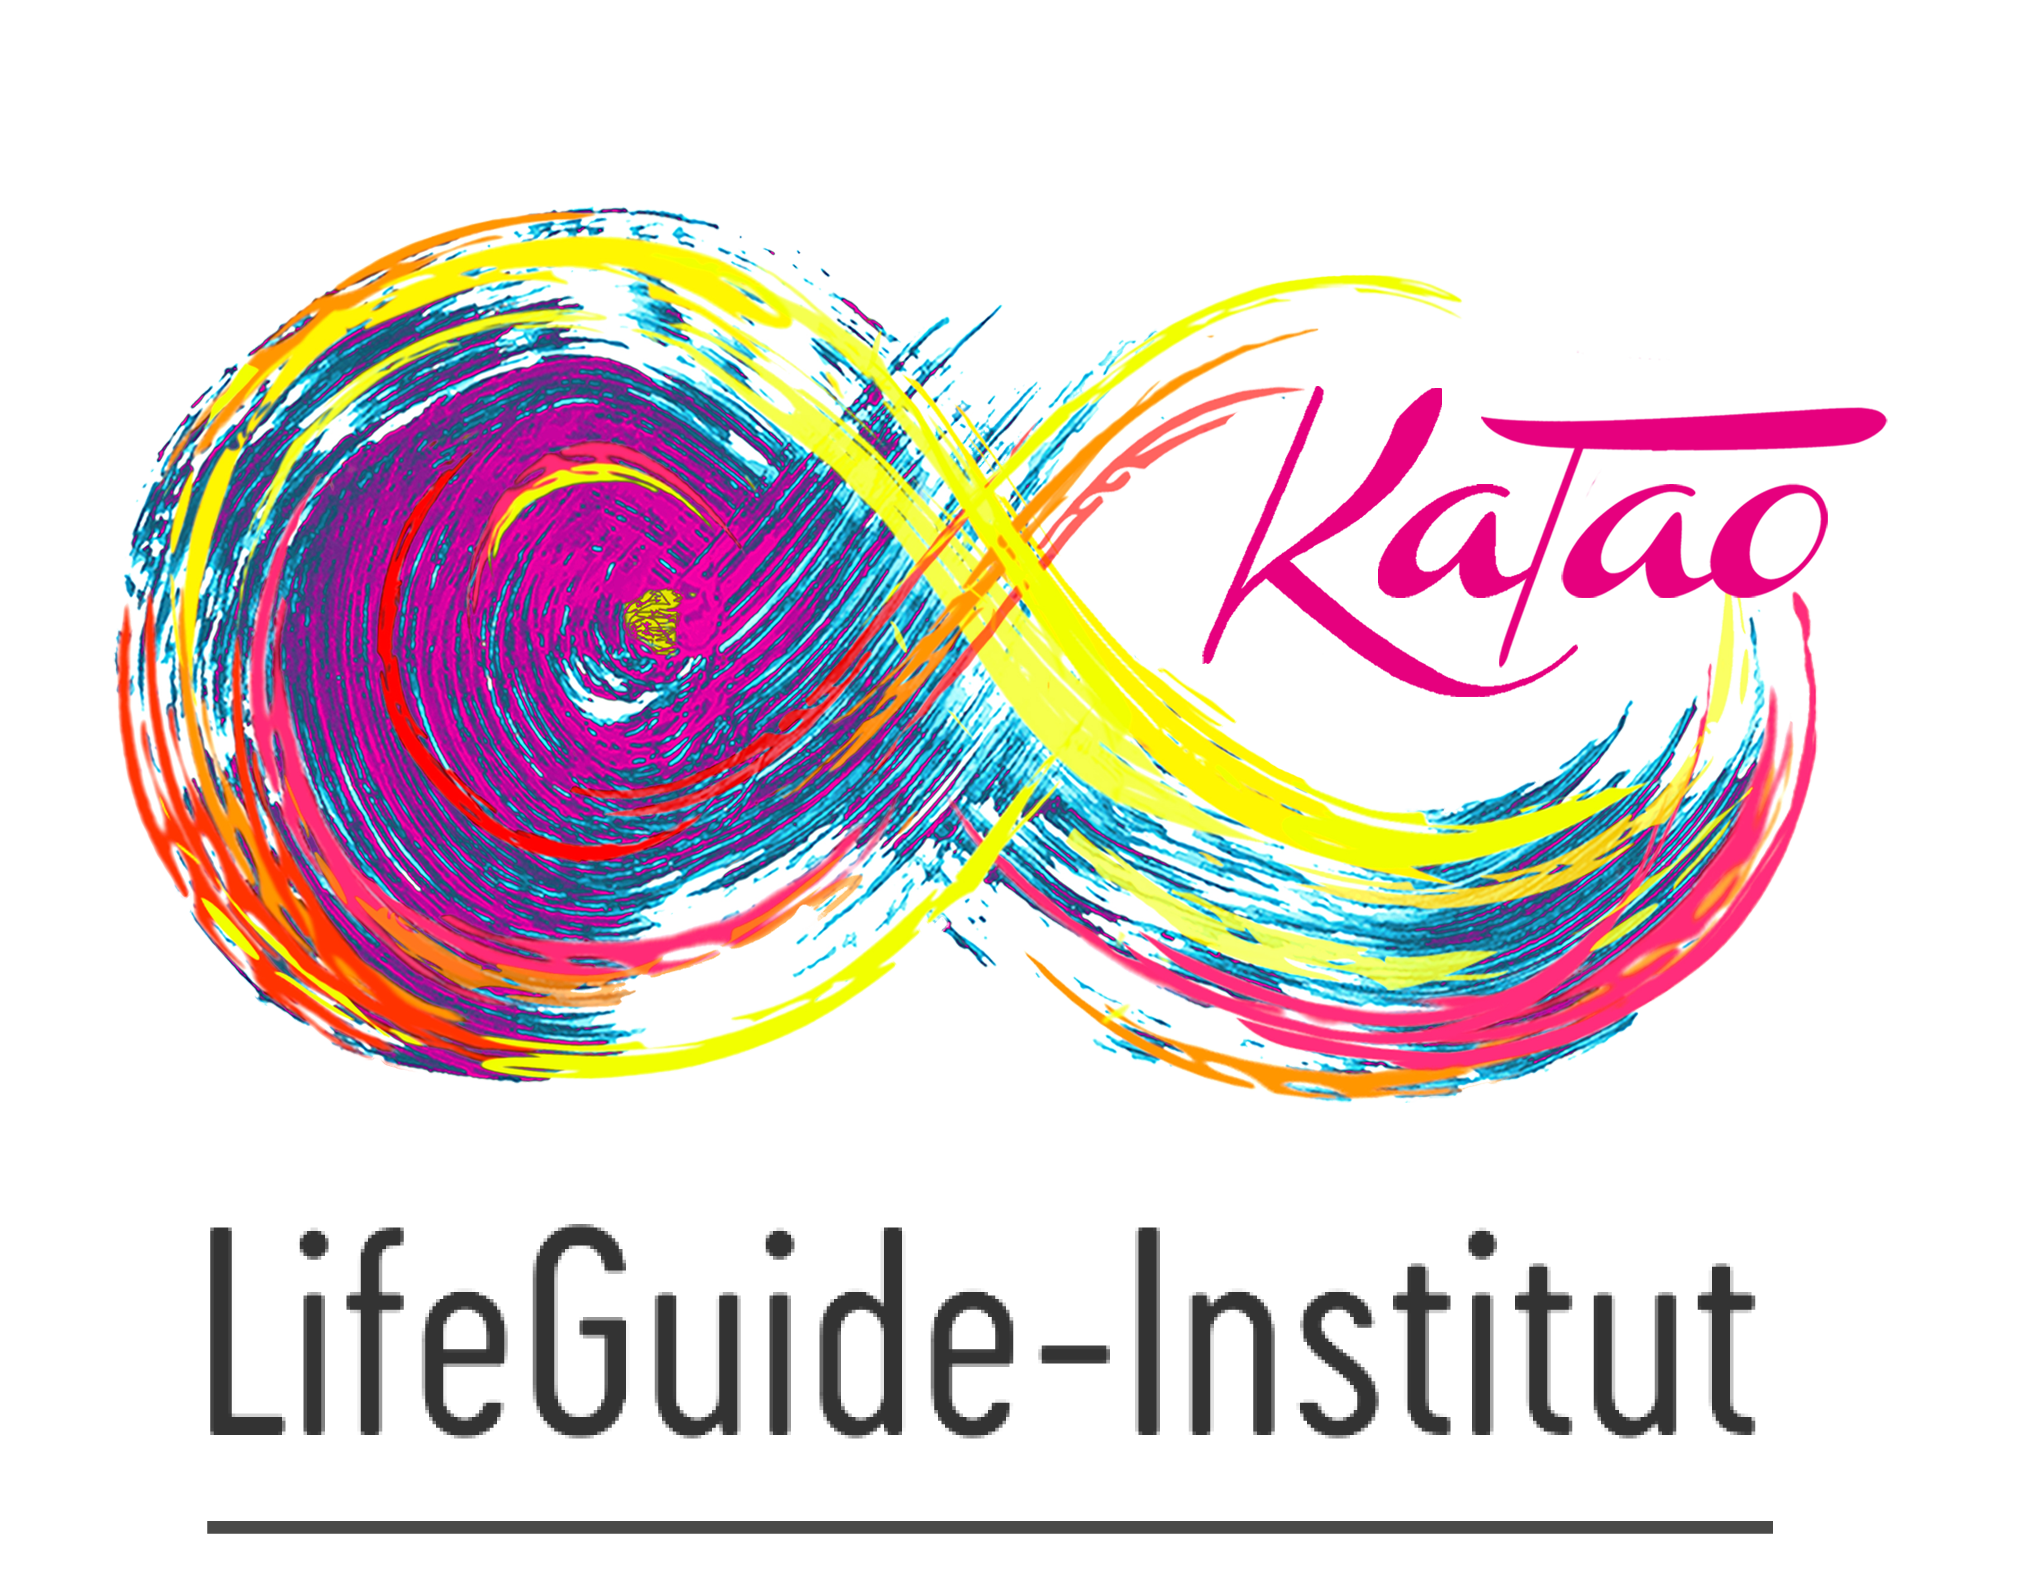 LifeGuide-Institut